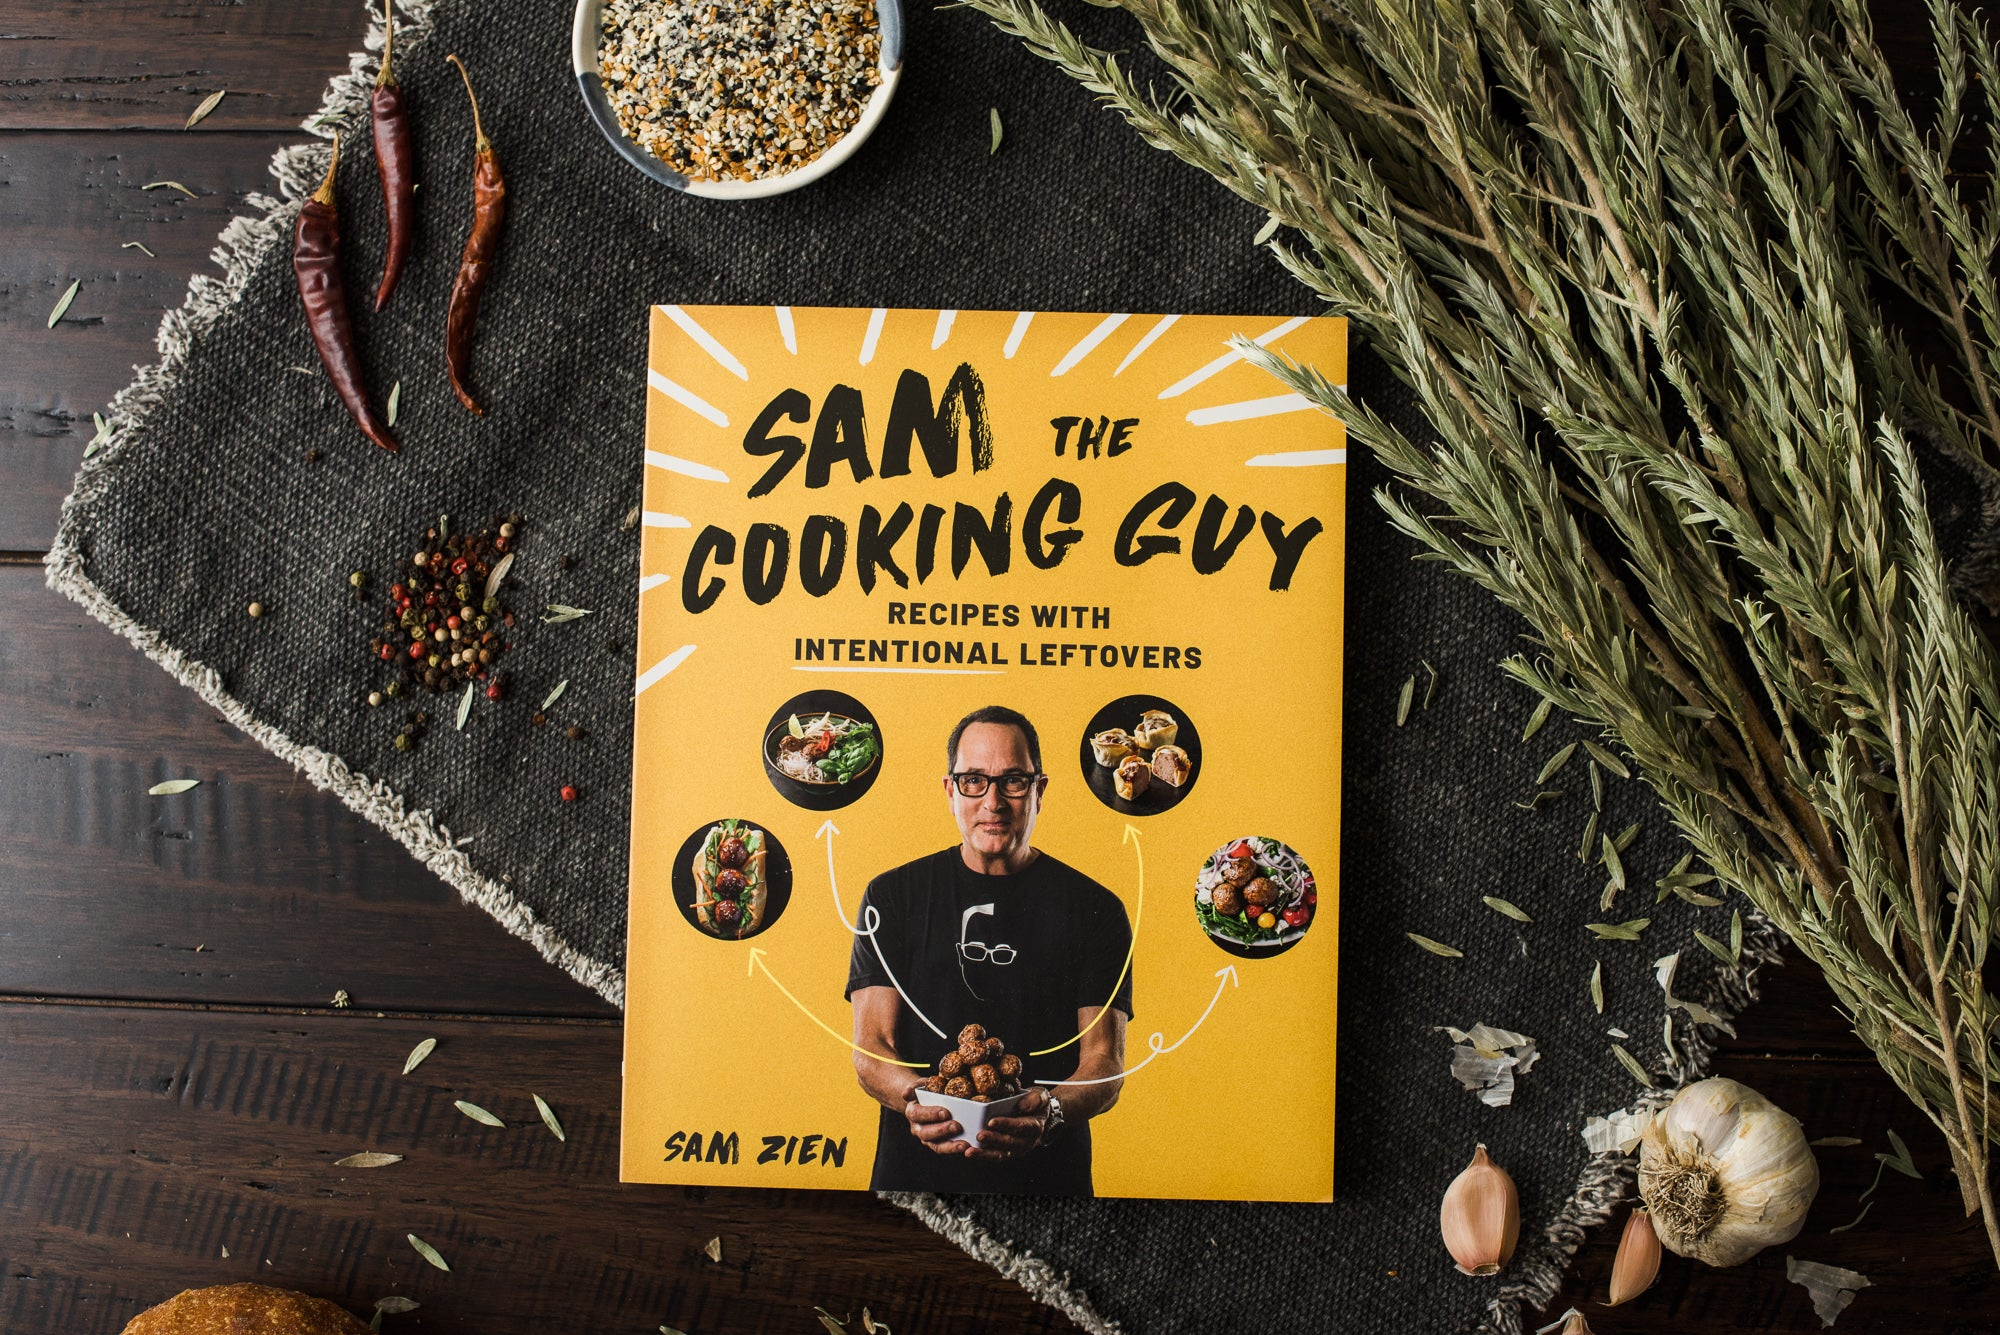 <a target='_blank' href='https://amzn.to/34ZN59D'>Sam The Cooking Guy: Recipes with Intentional Leftovers</a>